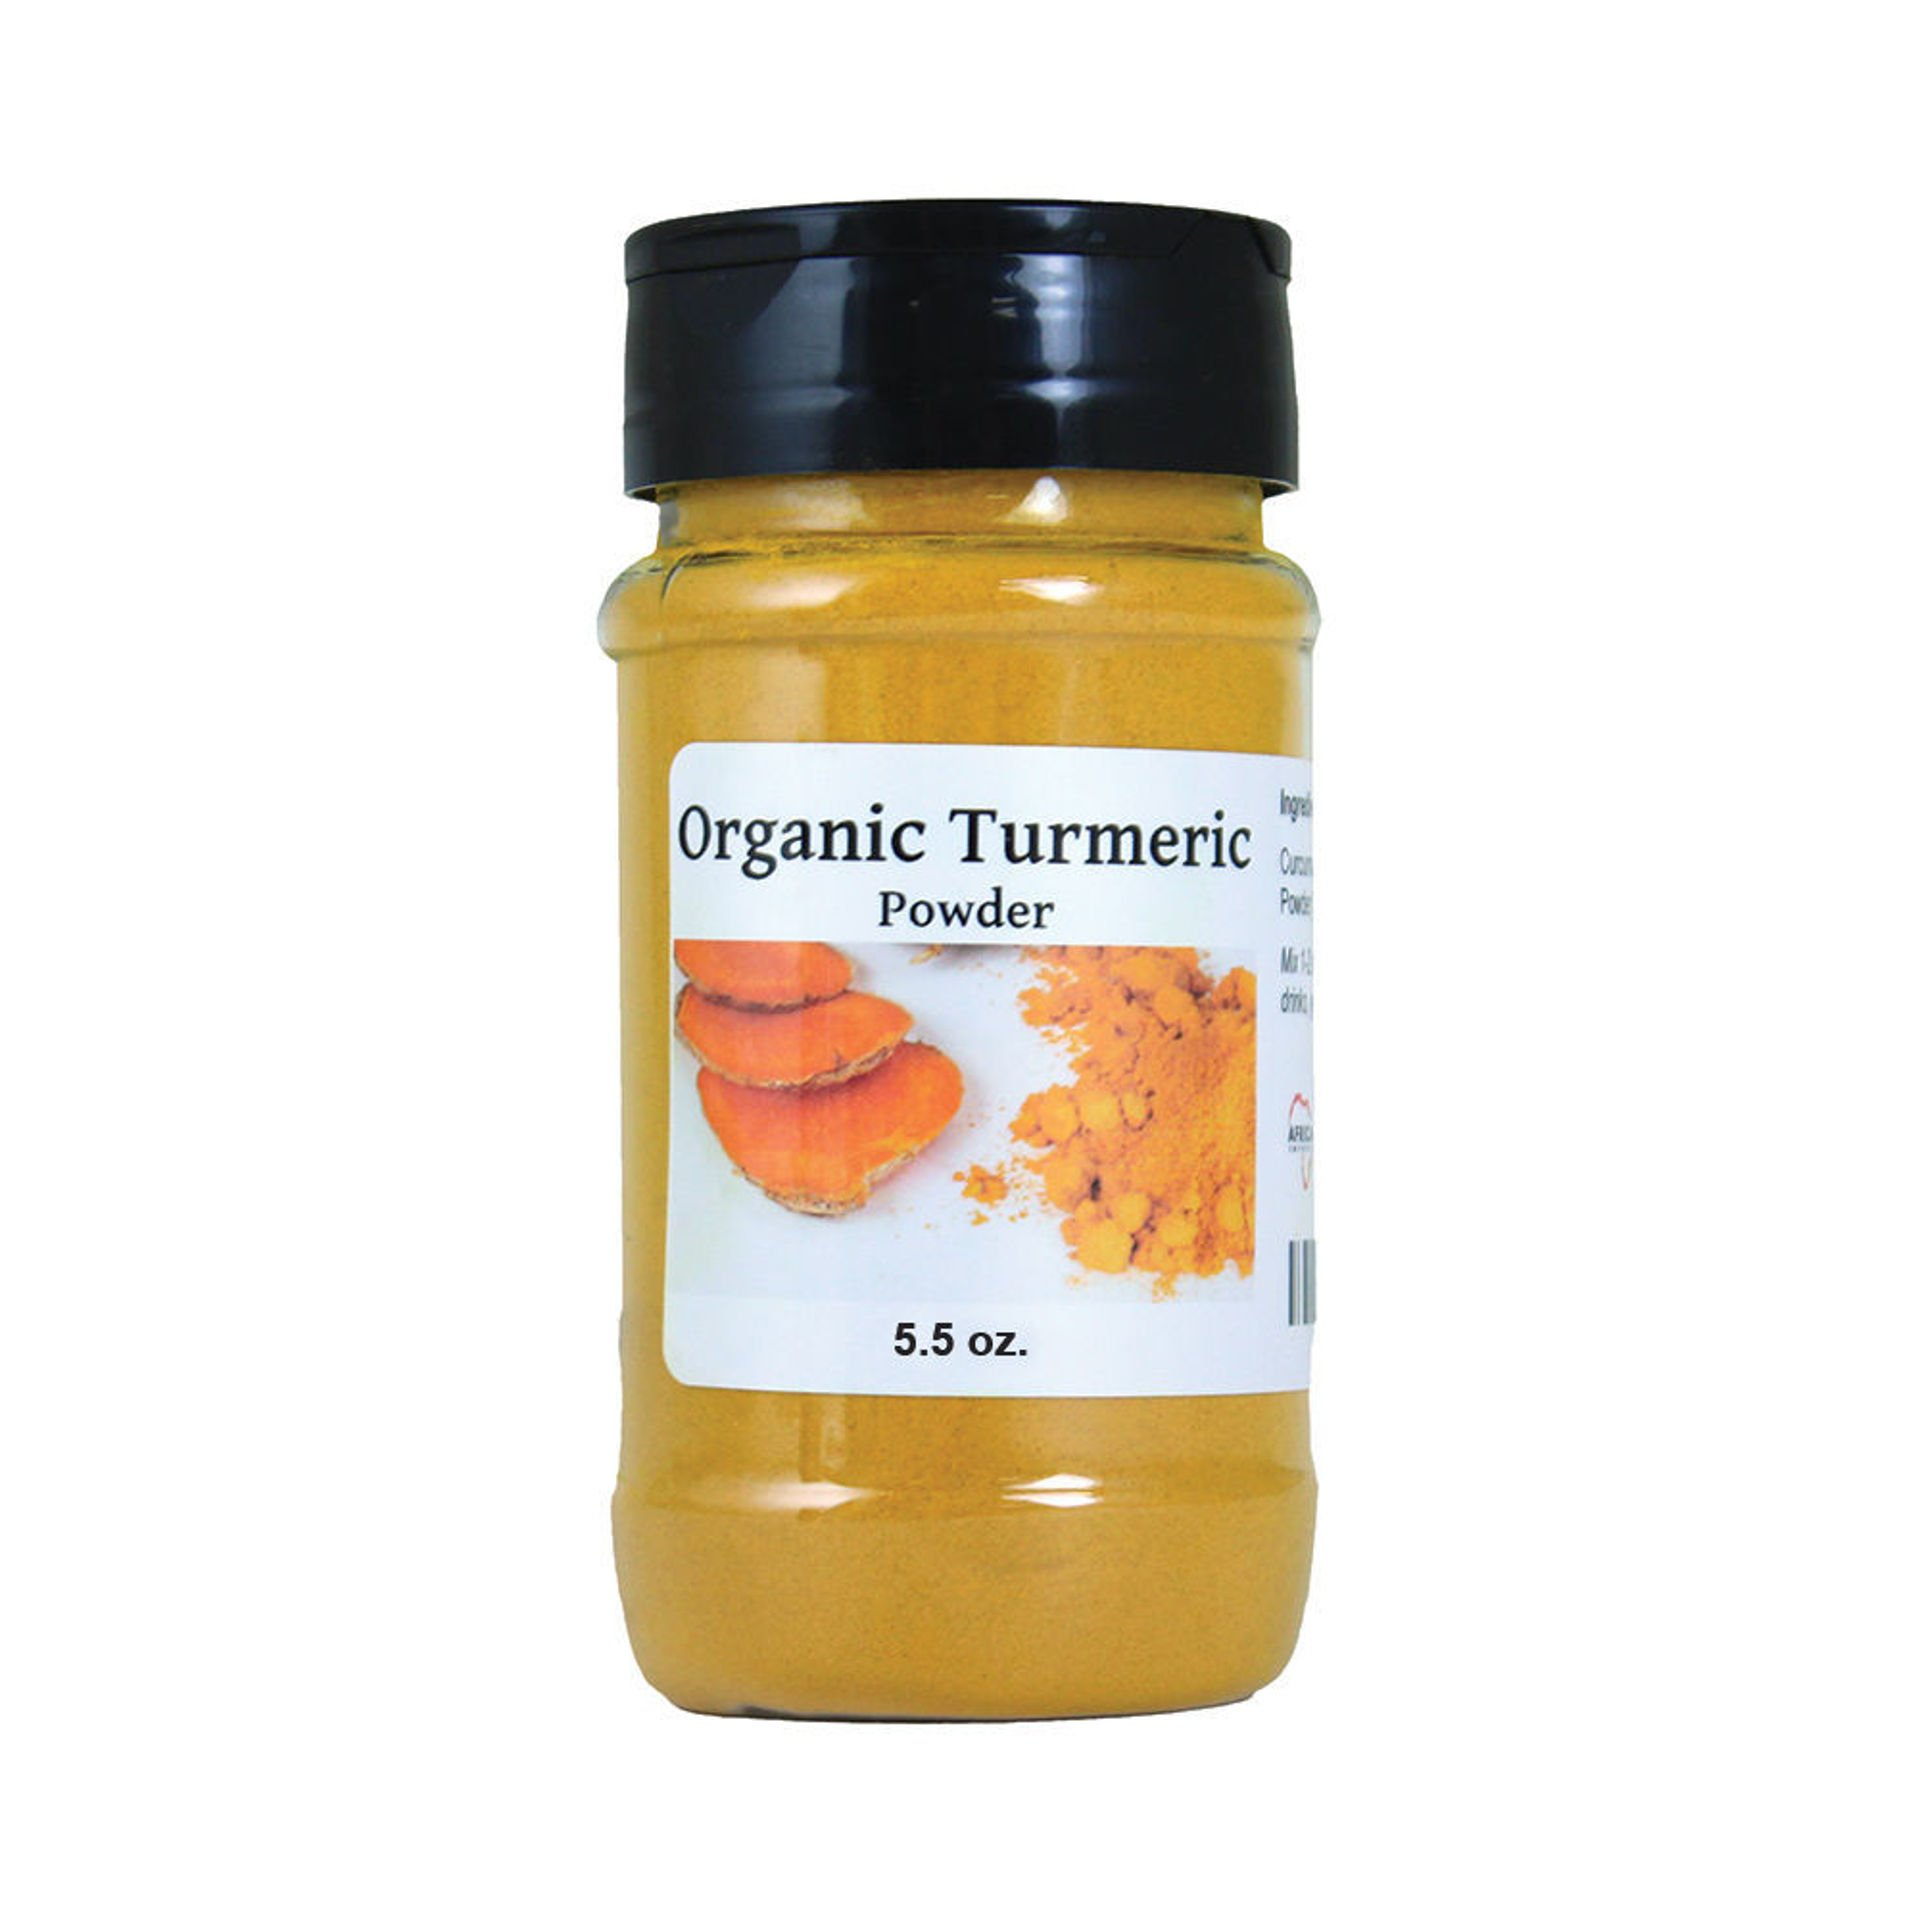 Picture of Organic Turmeric Powder – 5.5 oz.